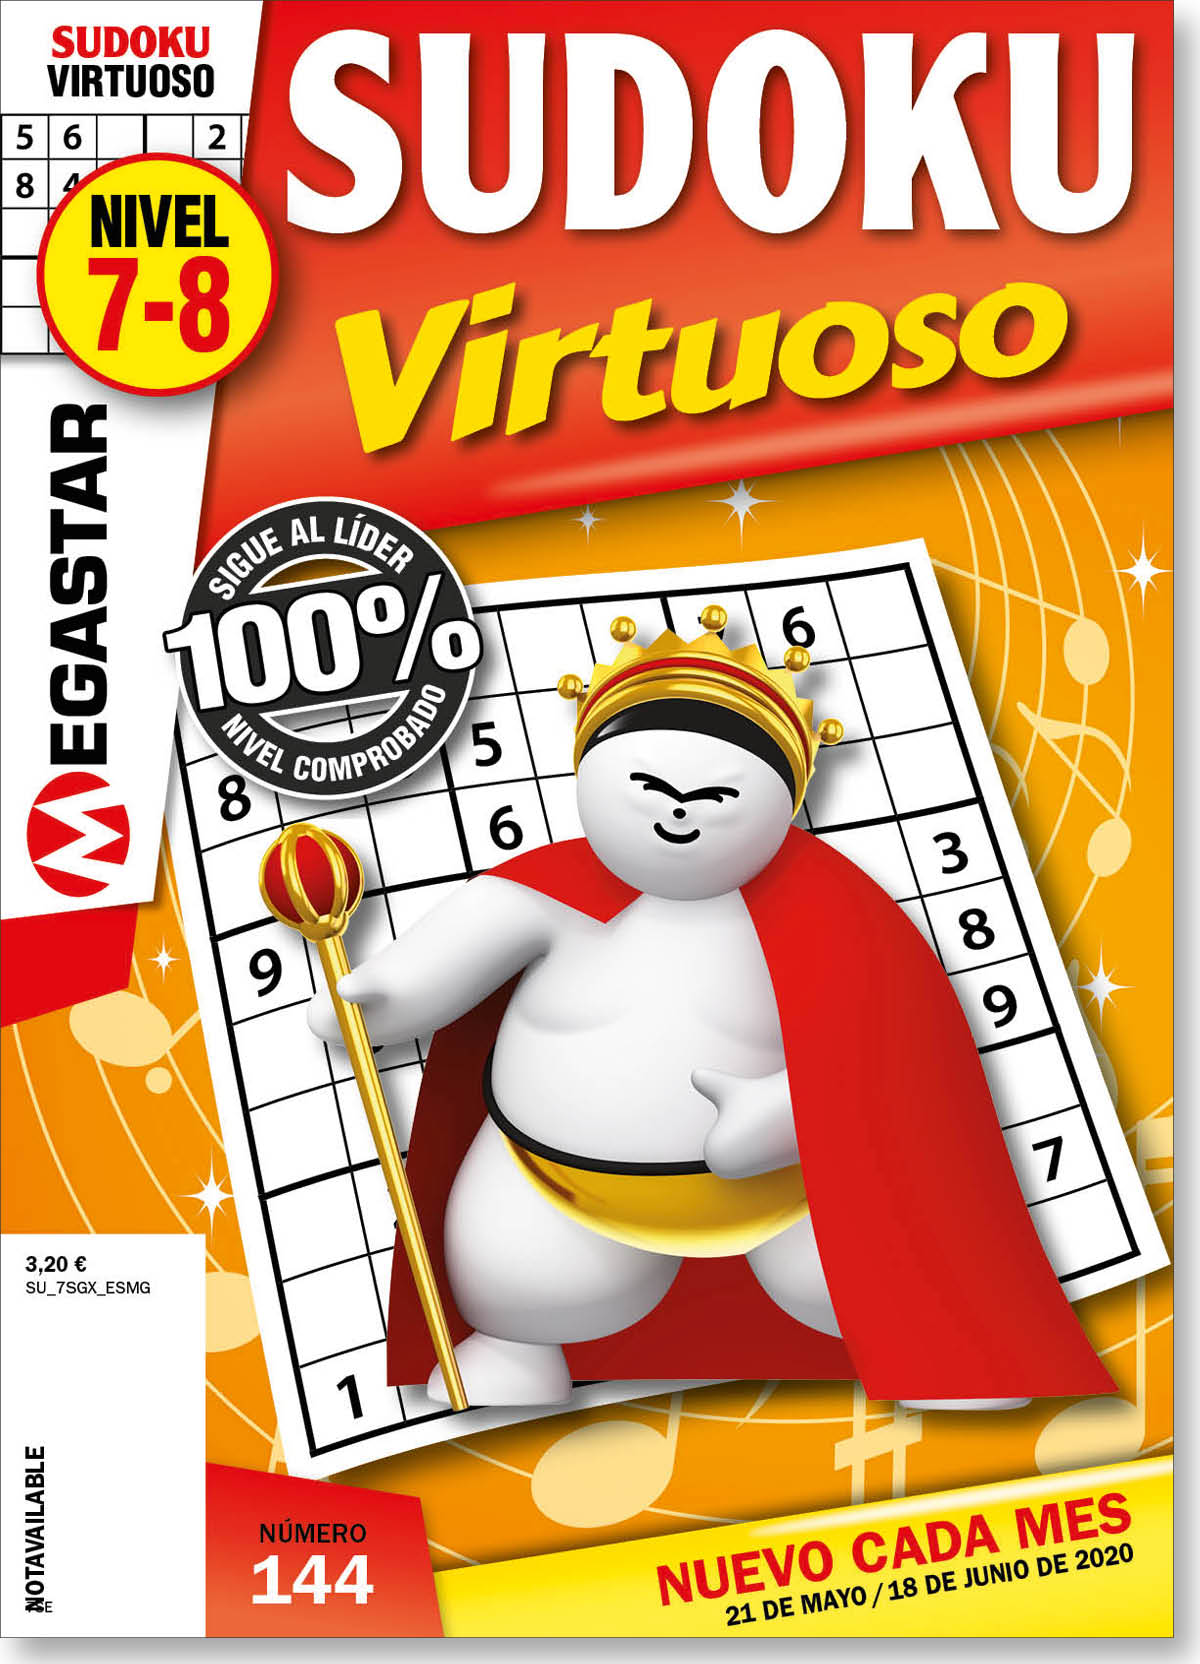 Sudoku Virtuoso Nivel 7-8